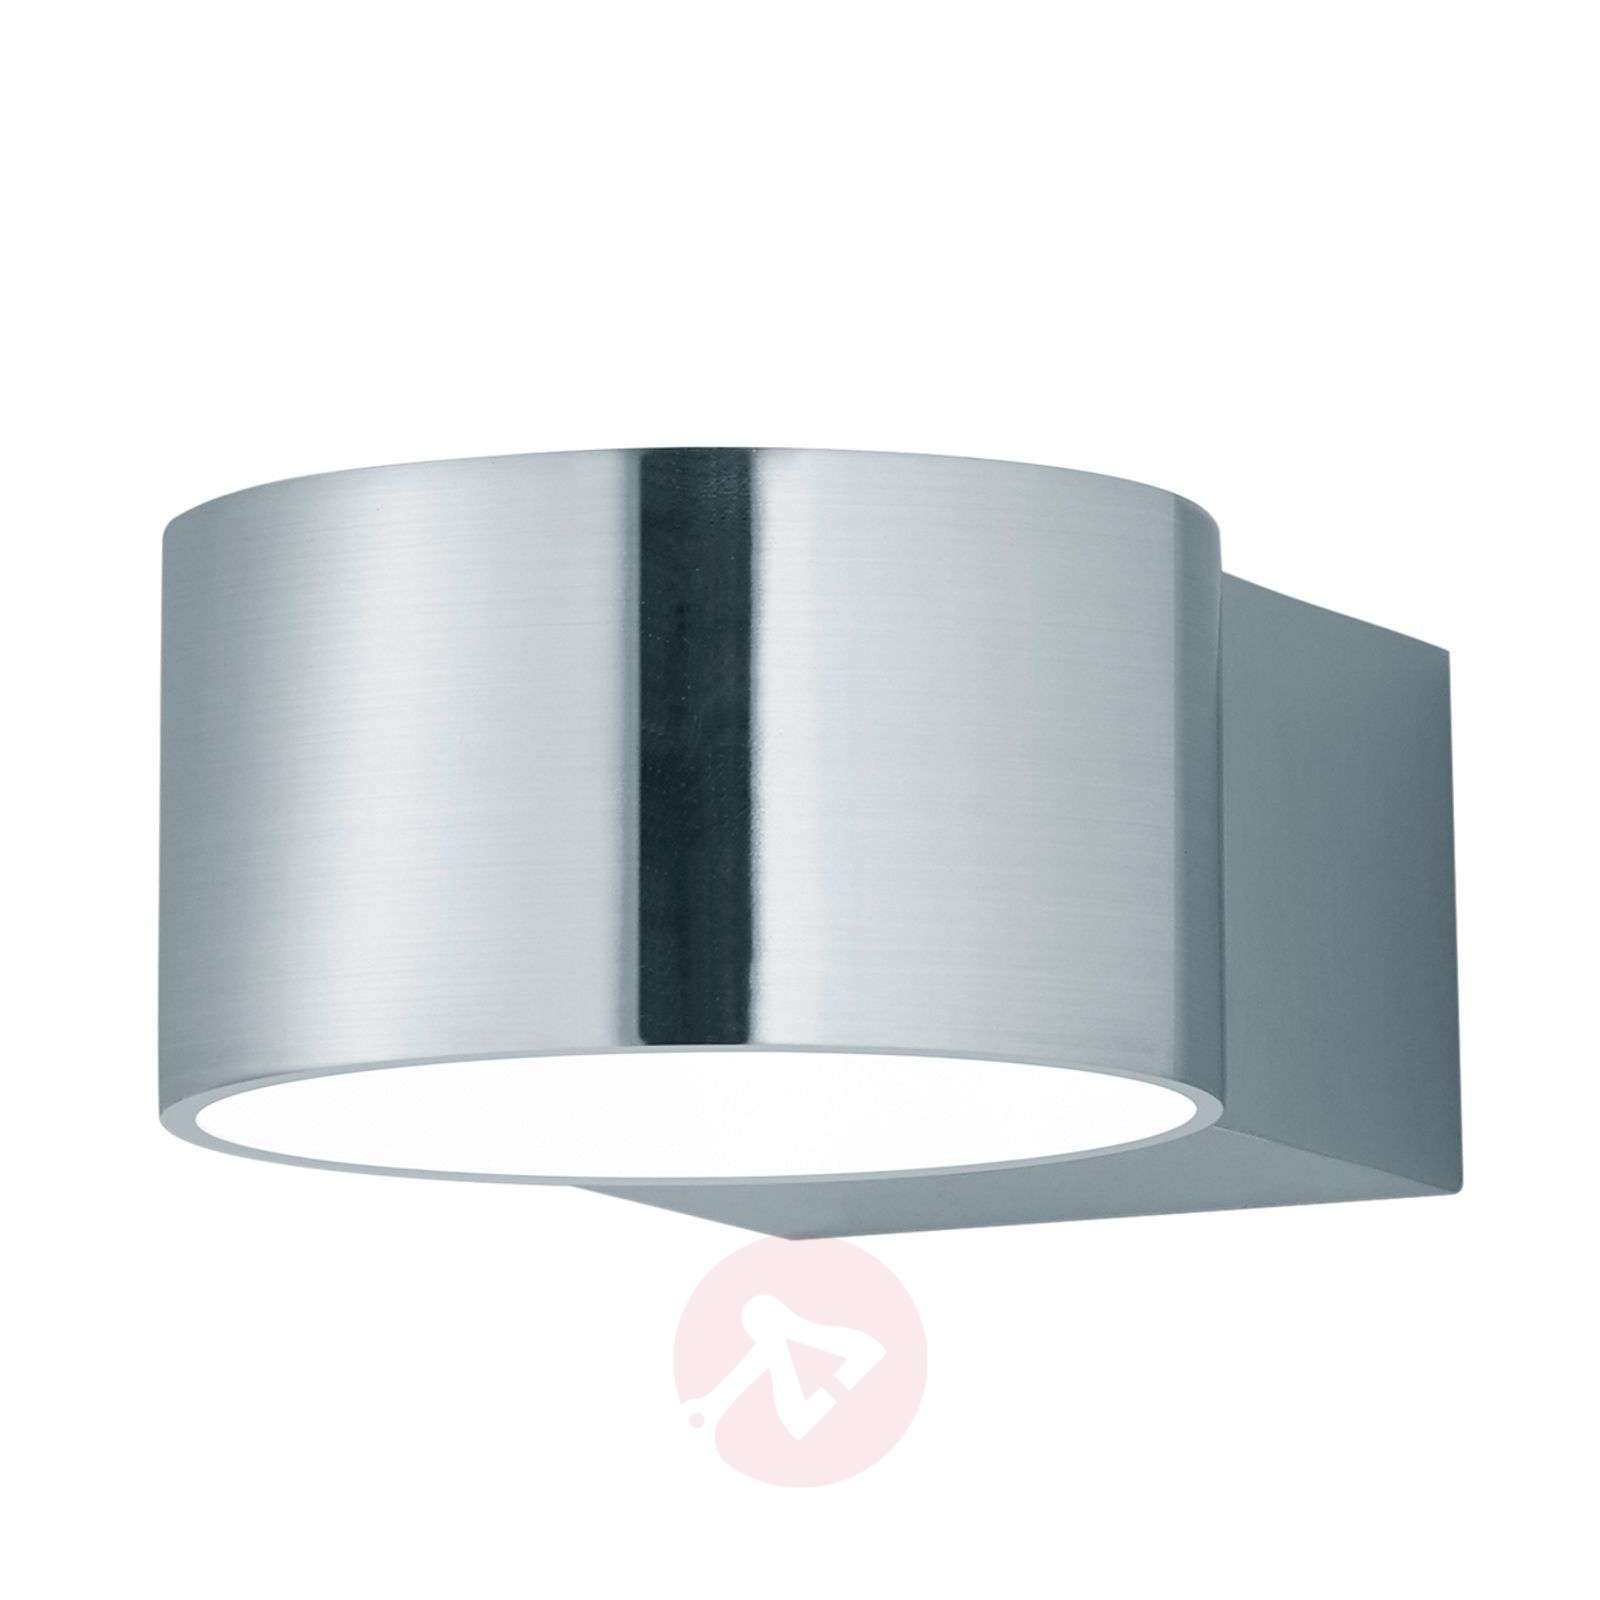 Nickel-plated wall light Lacapo-9005172-02